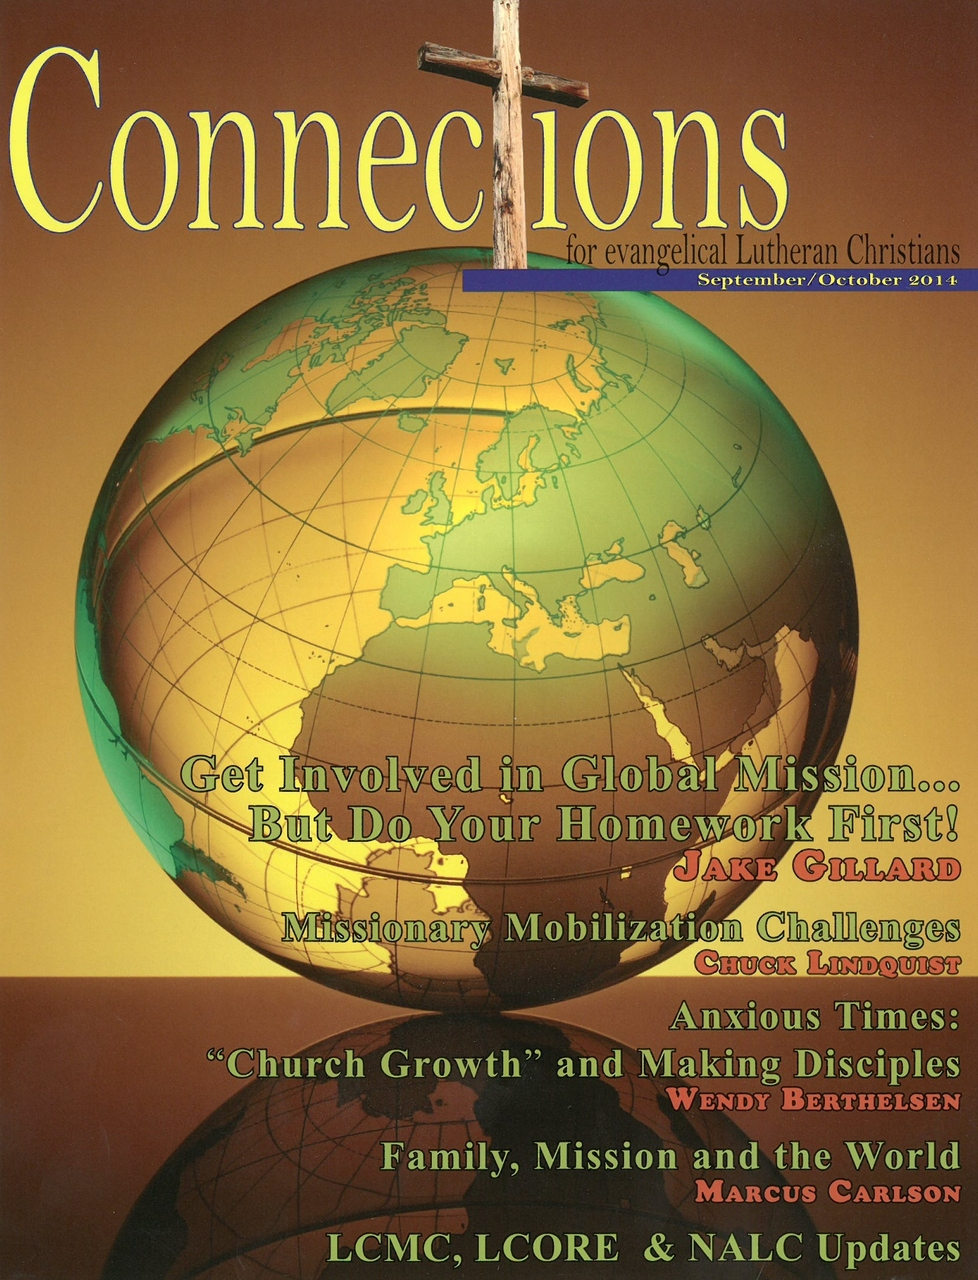 Connections Back Issue Sept/Oct '14